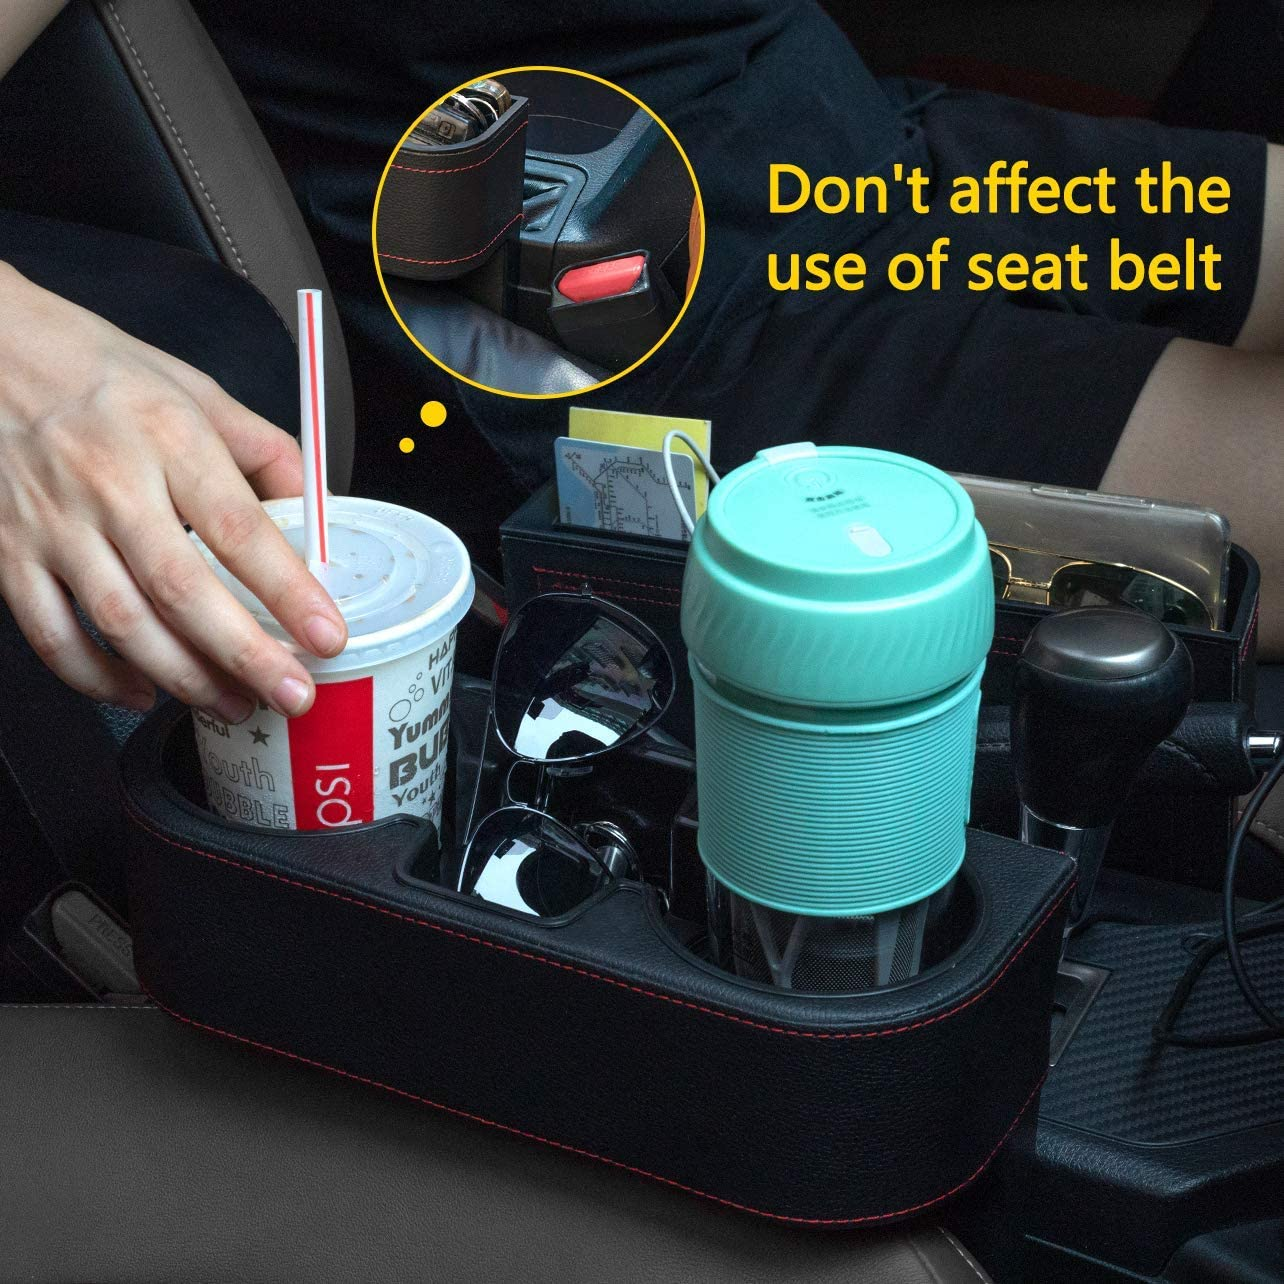 Wallets Arbnic 2 Packs Car Seat Gap Organizer for Storage Mobile Phones Keys Prevent Items from Falling and Let You Cup Within Reach Cups